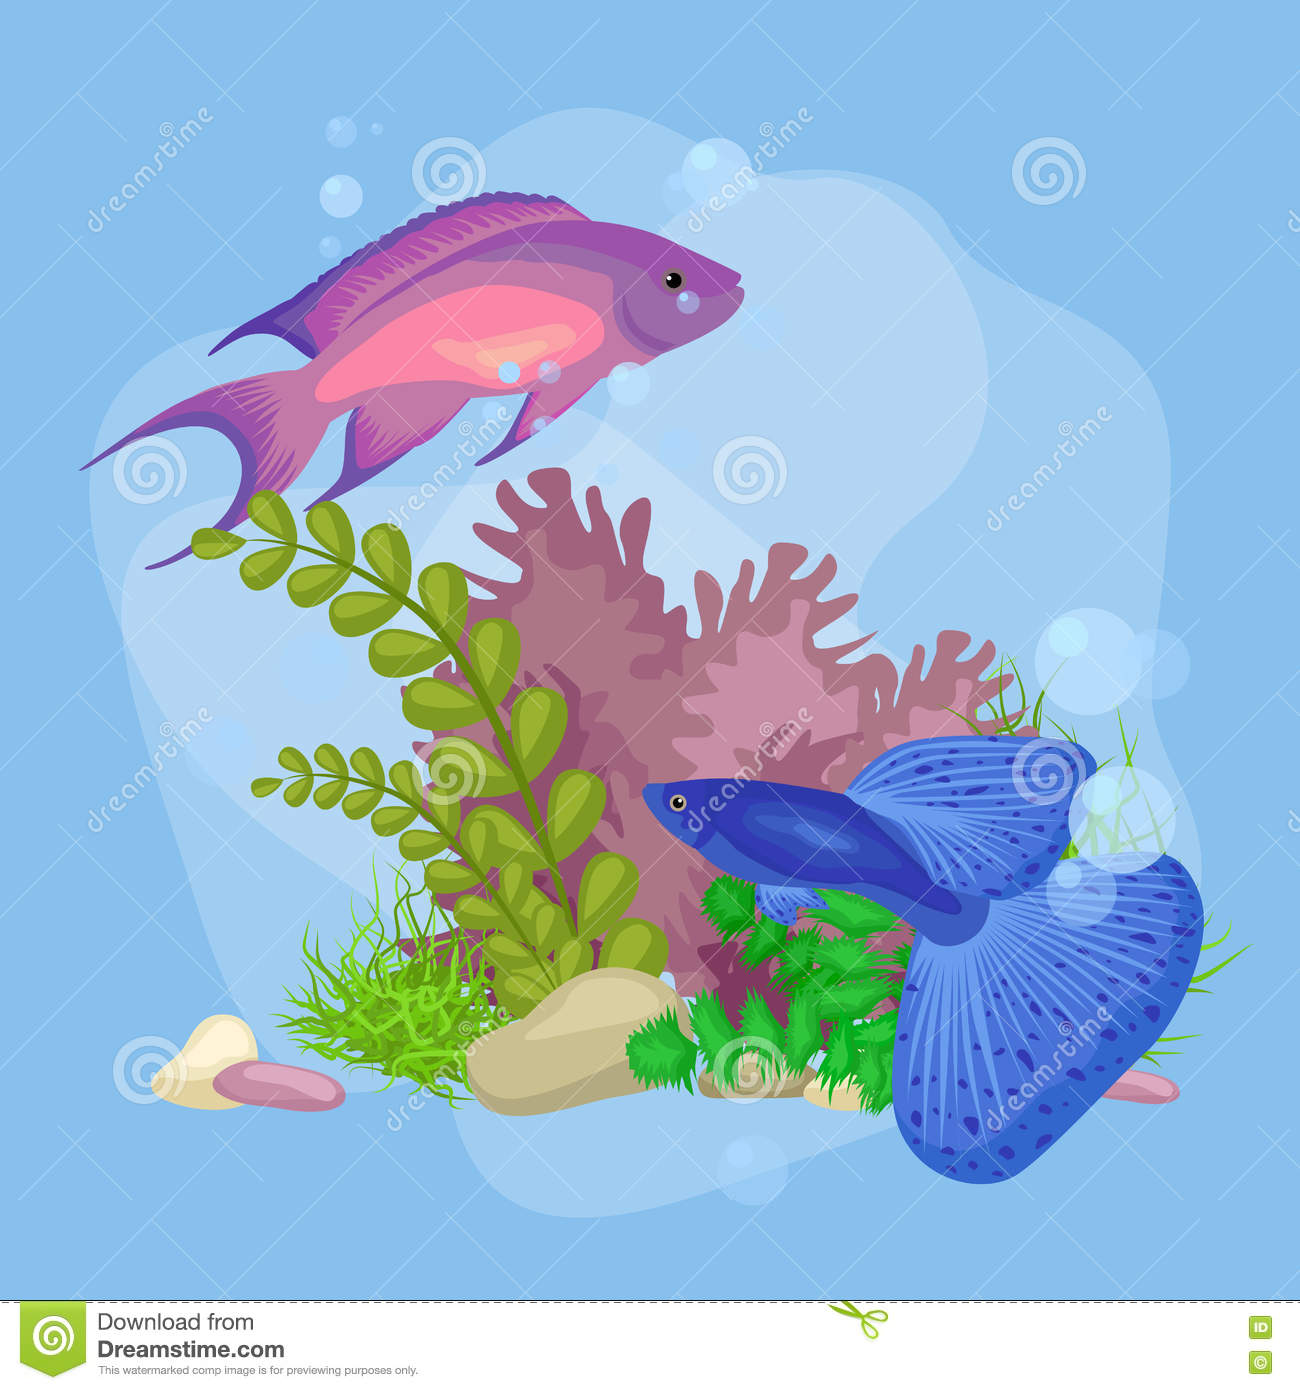 Underwater world vector illustration background stock for Bubble fish game